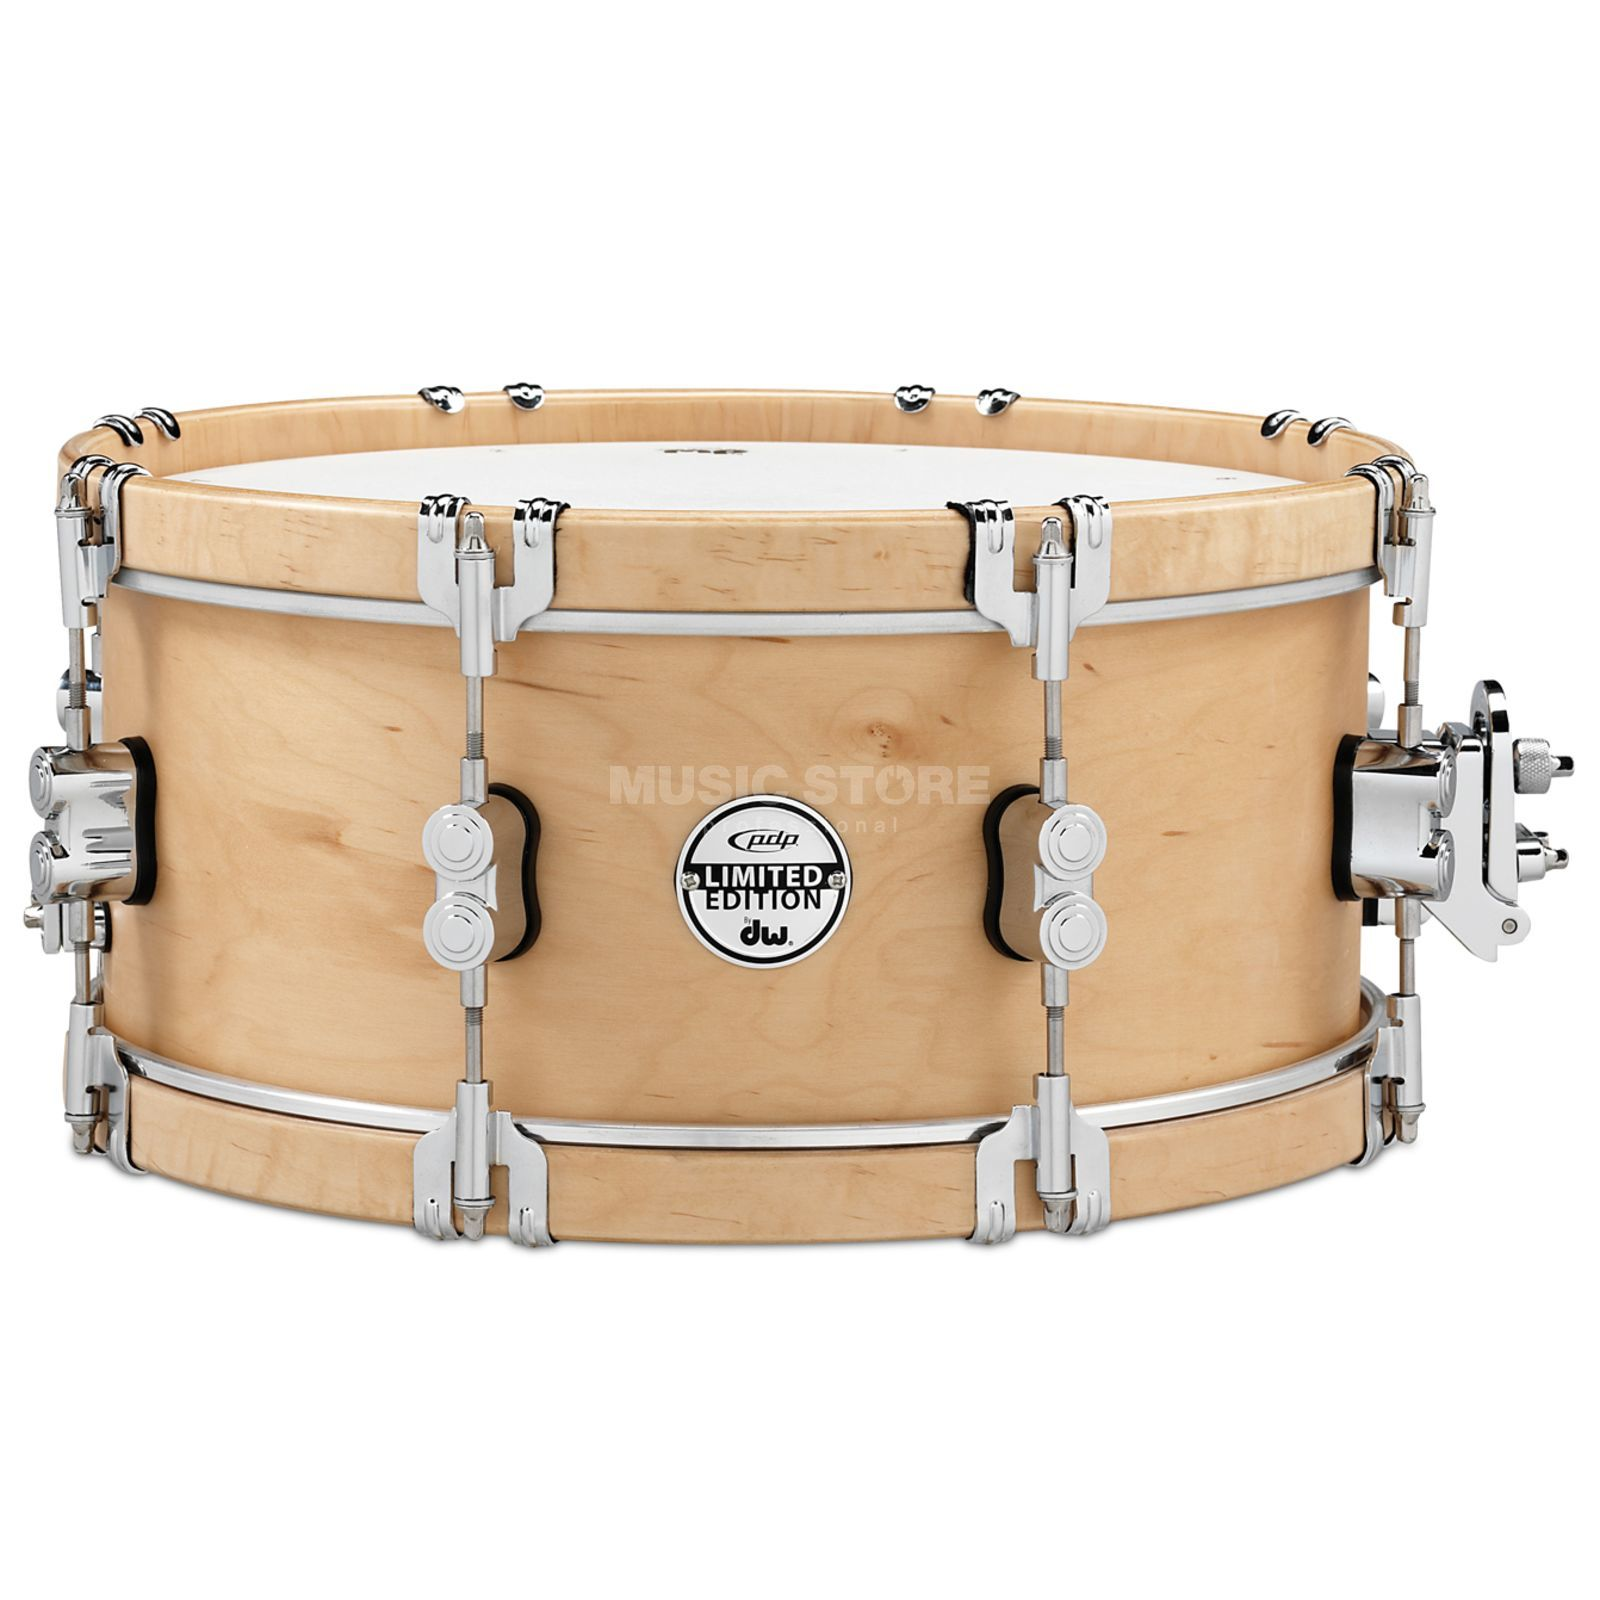 "Drum Workshop PDP LTD Classic Snare 14""x6"" Wood Hoop Produktbillede"